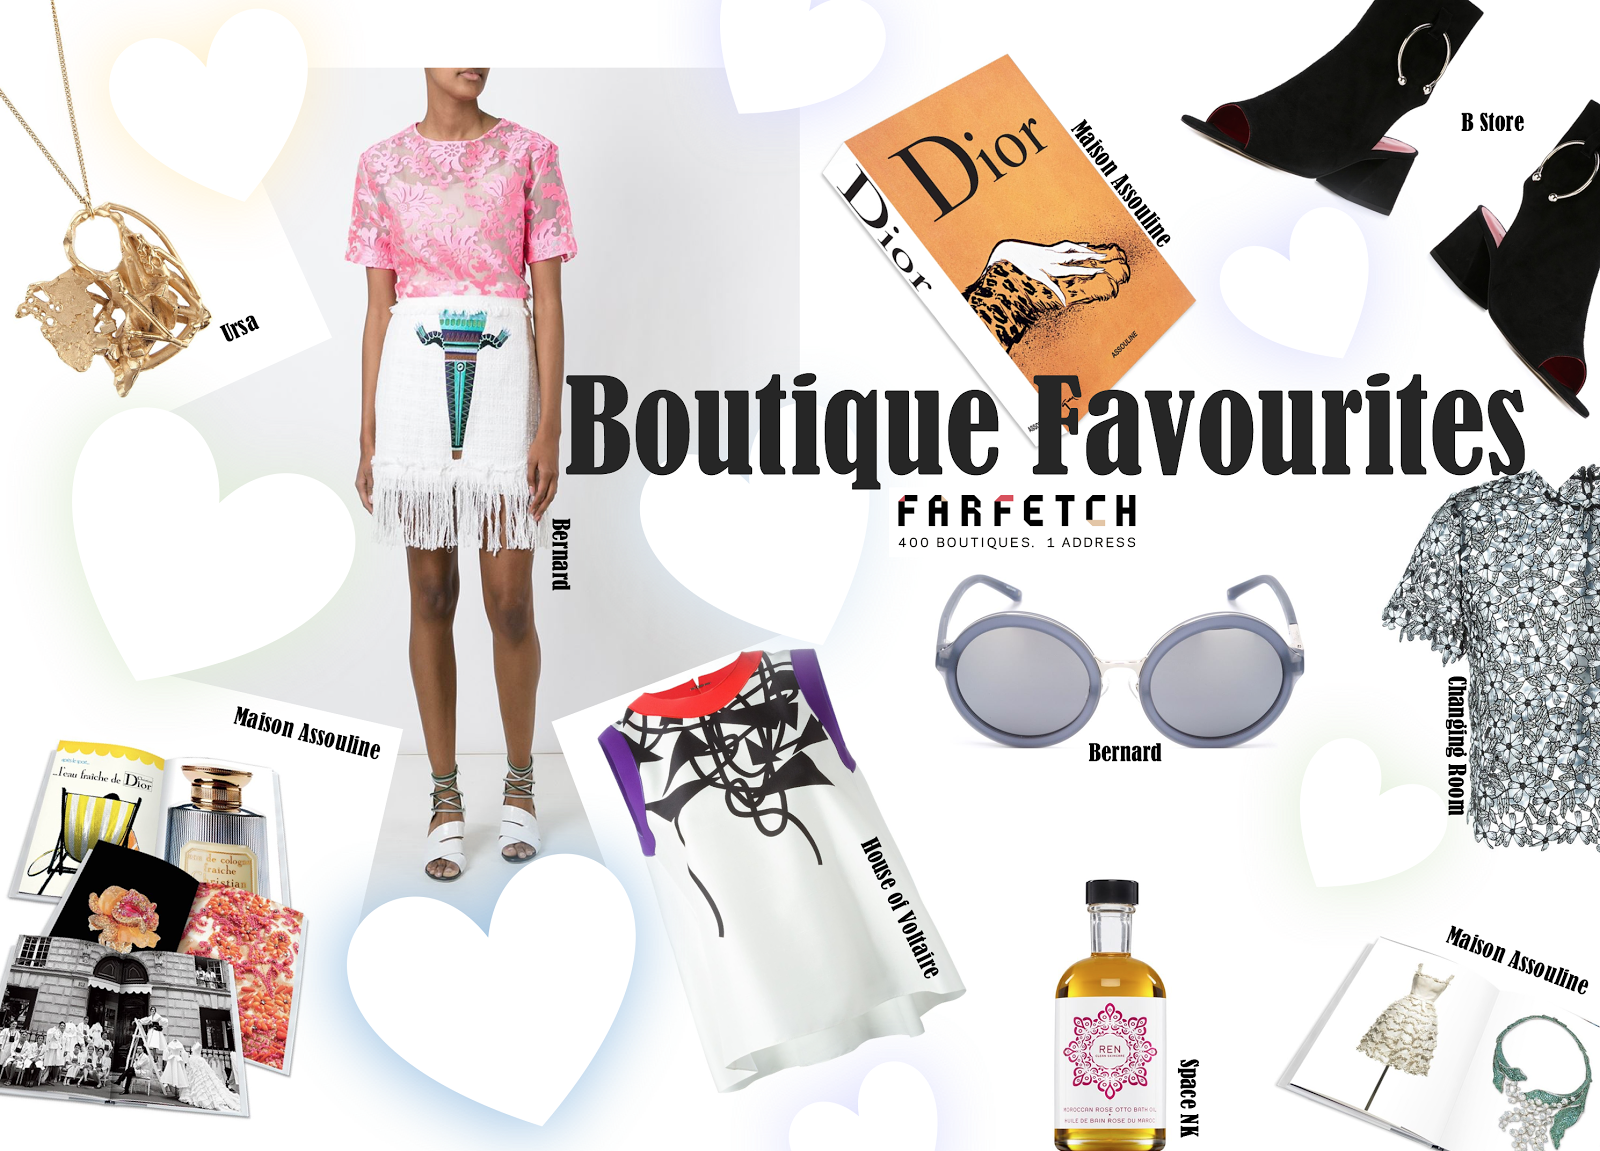 Boutique Favourites